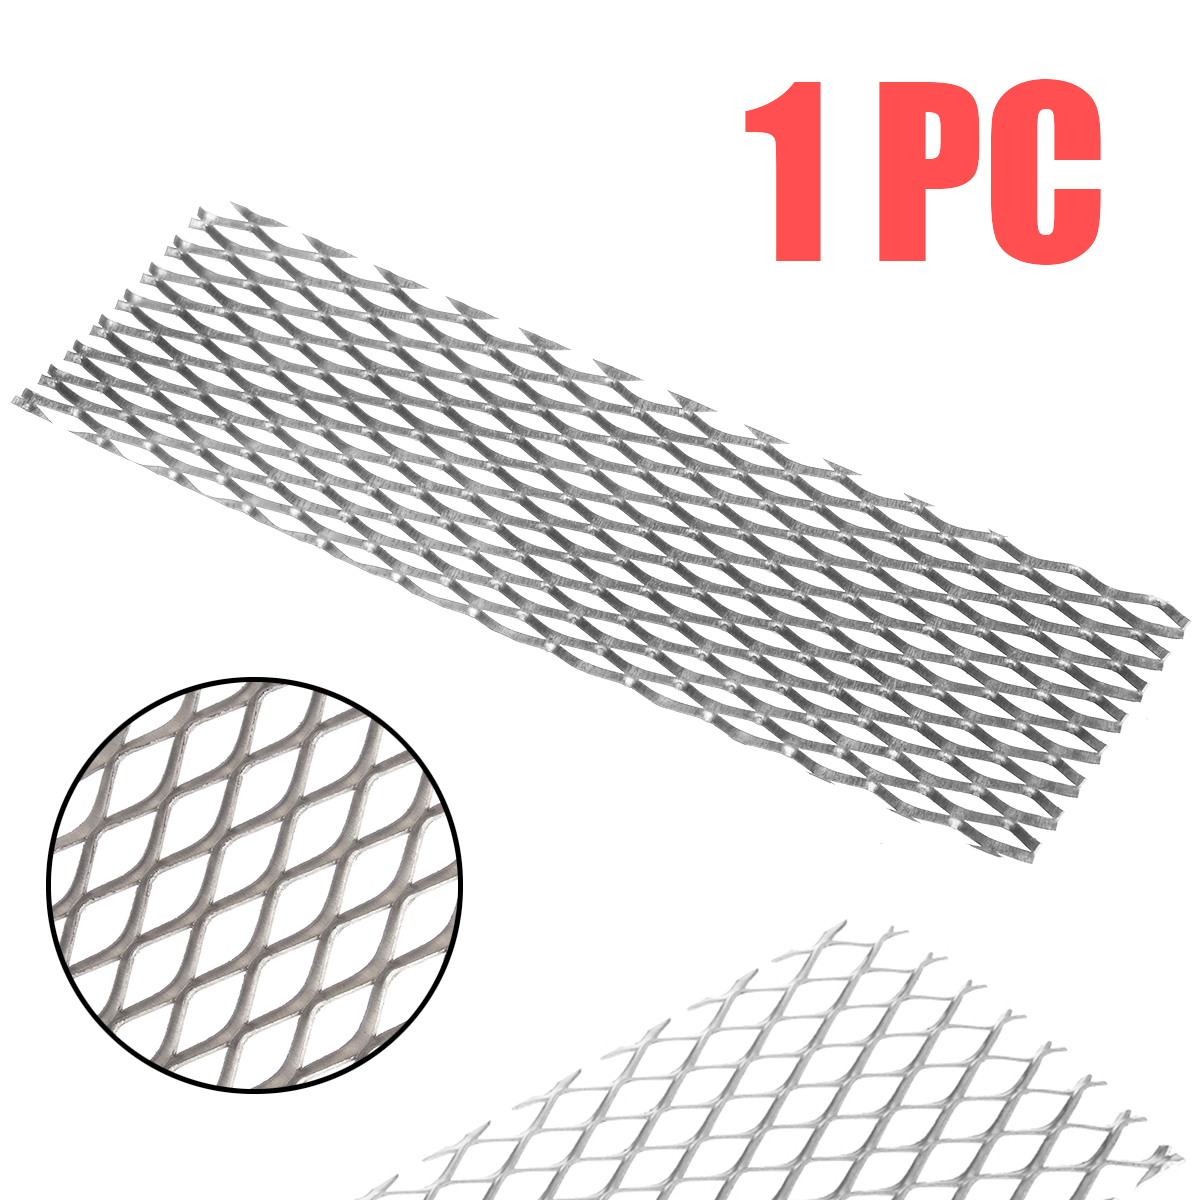 Corrosion-resistant Industrial Titanium Mesh 50mm X 165mm Recycled Metal Titanium Sheet Electrode For Electrolysis